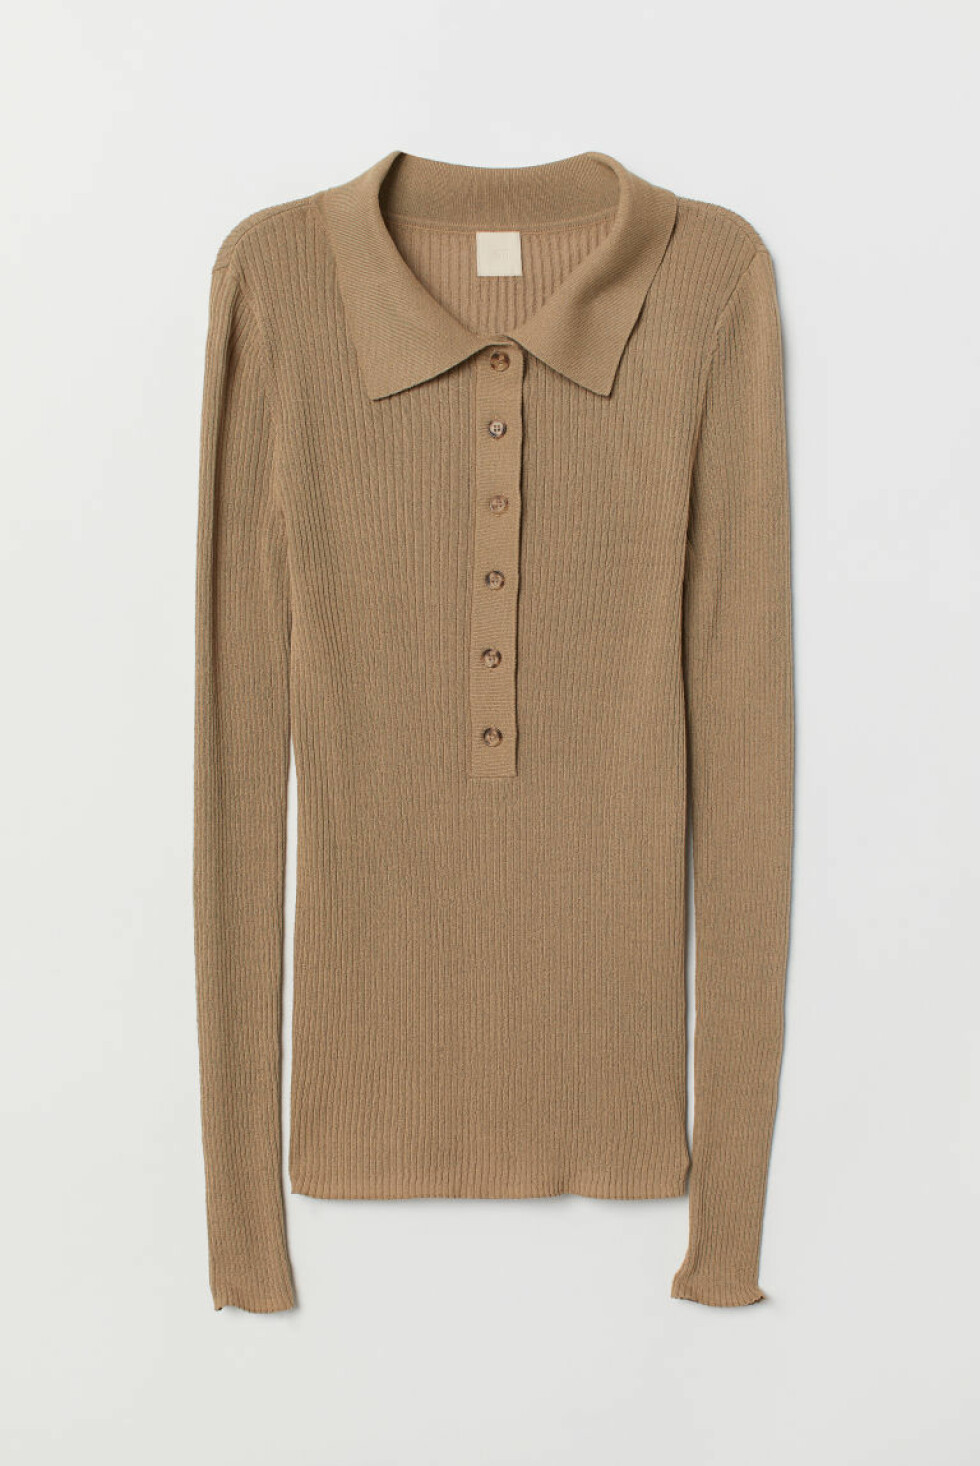 Topp fra H&M |400,-| https://www2.hm.com/no_no/productpage.0742570001.html